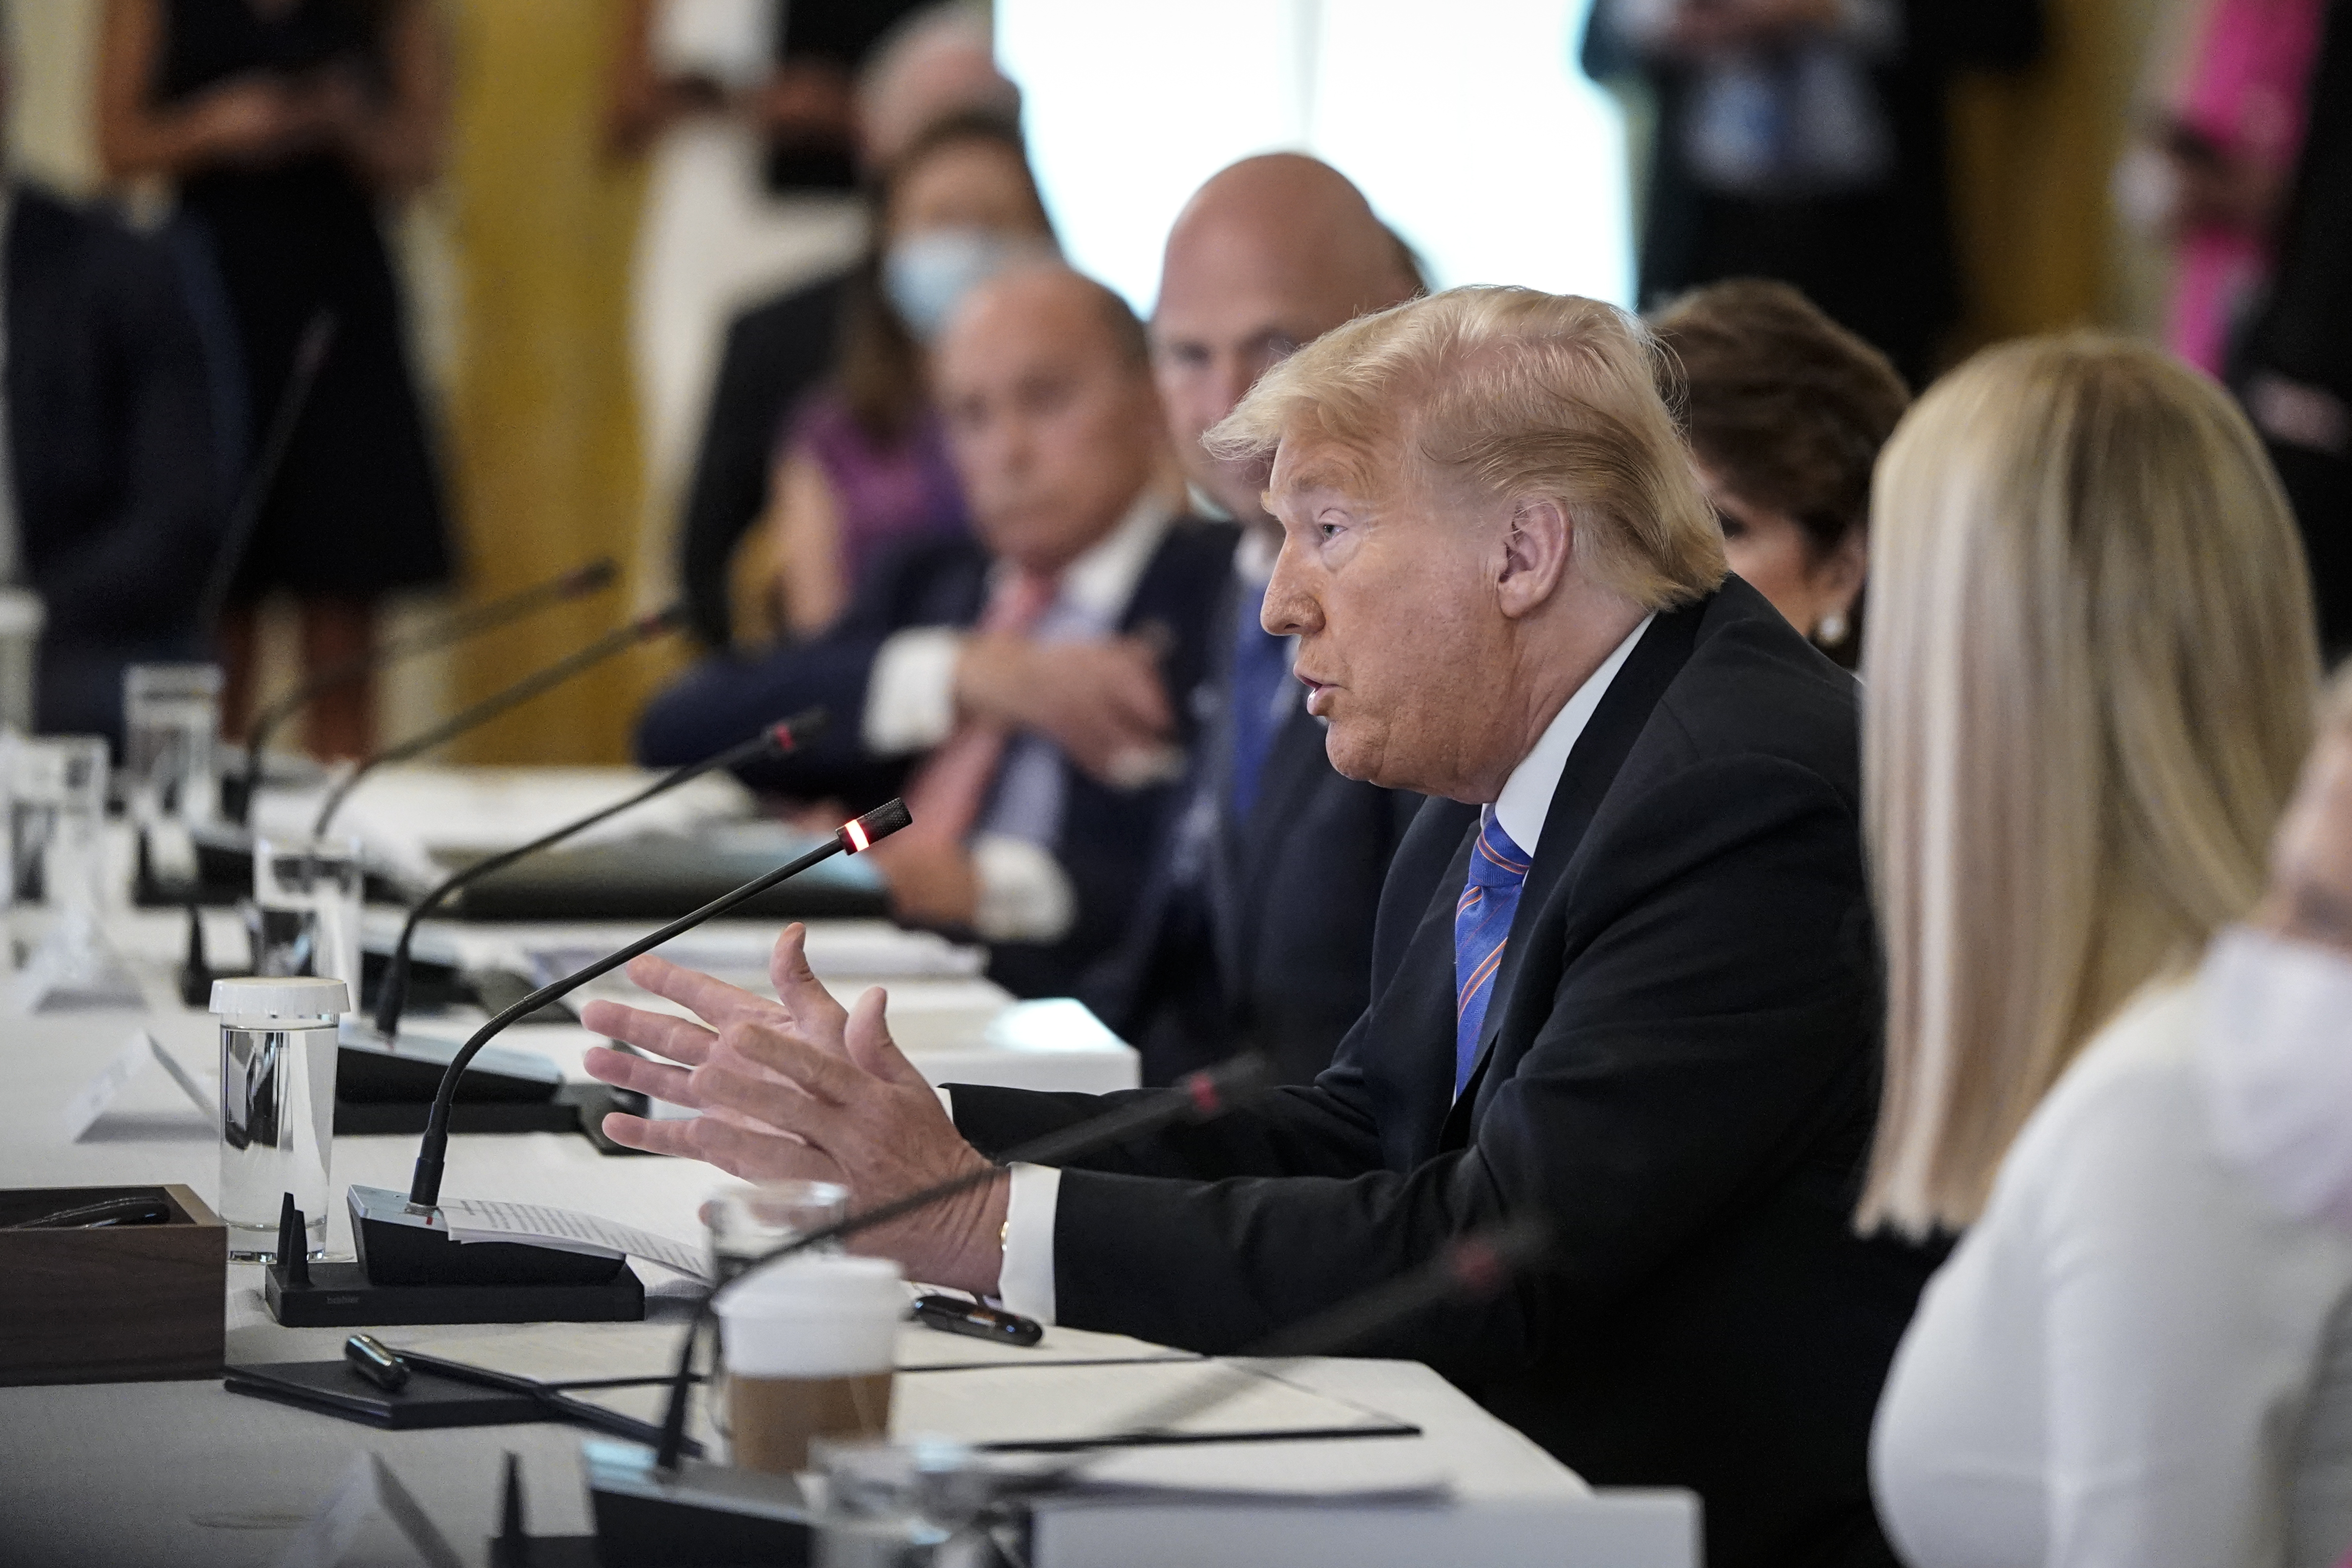 WASHINGTON, DC - JUNE 26: U.S. President Donald Trump participates in a meeting of the American Workforce Policy Advisory Board in the East Room of the White House on June 26, 2020 in Washington, DC. Earlier in the day President Trump canceled his scheduled weekend trip to his private golf club in Bedminster, New Jersey which the state now has a mandatory 14-day quarantine for travelers coming from states with coronavirus spikes. (Photo by Drew Angerer/Getty Images)